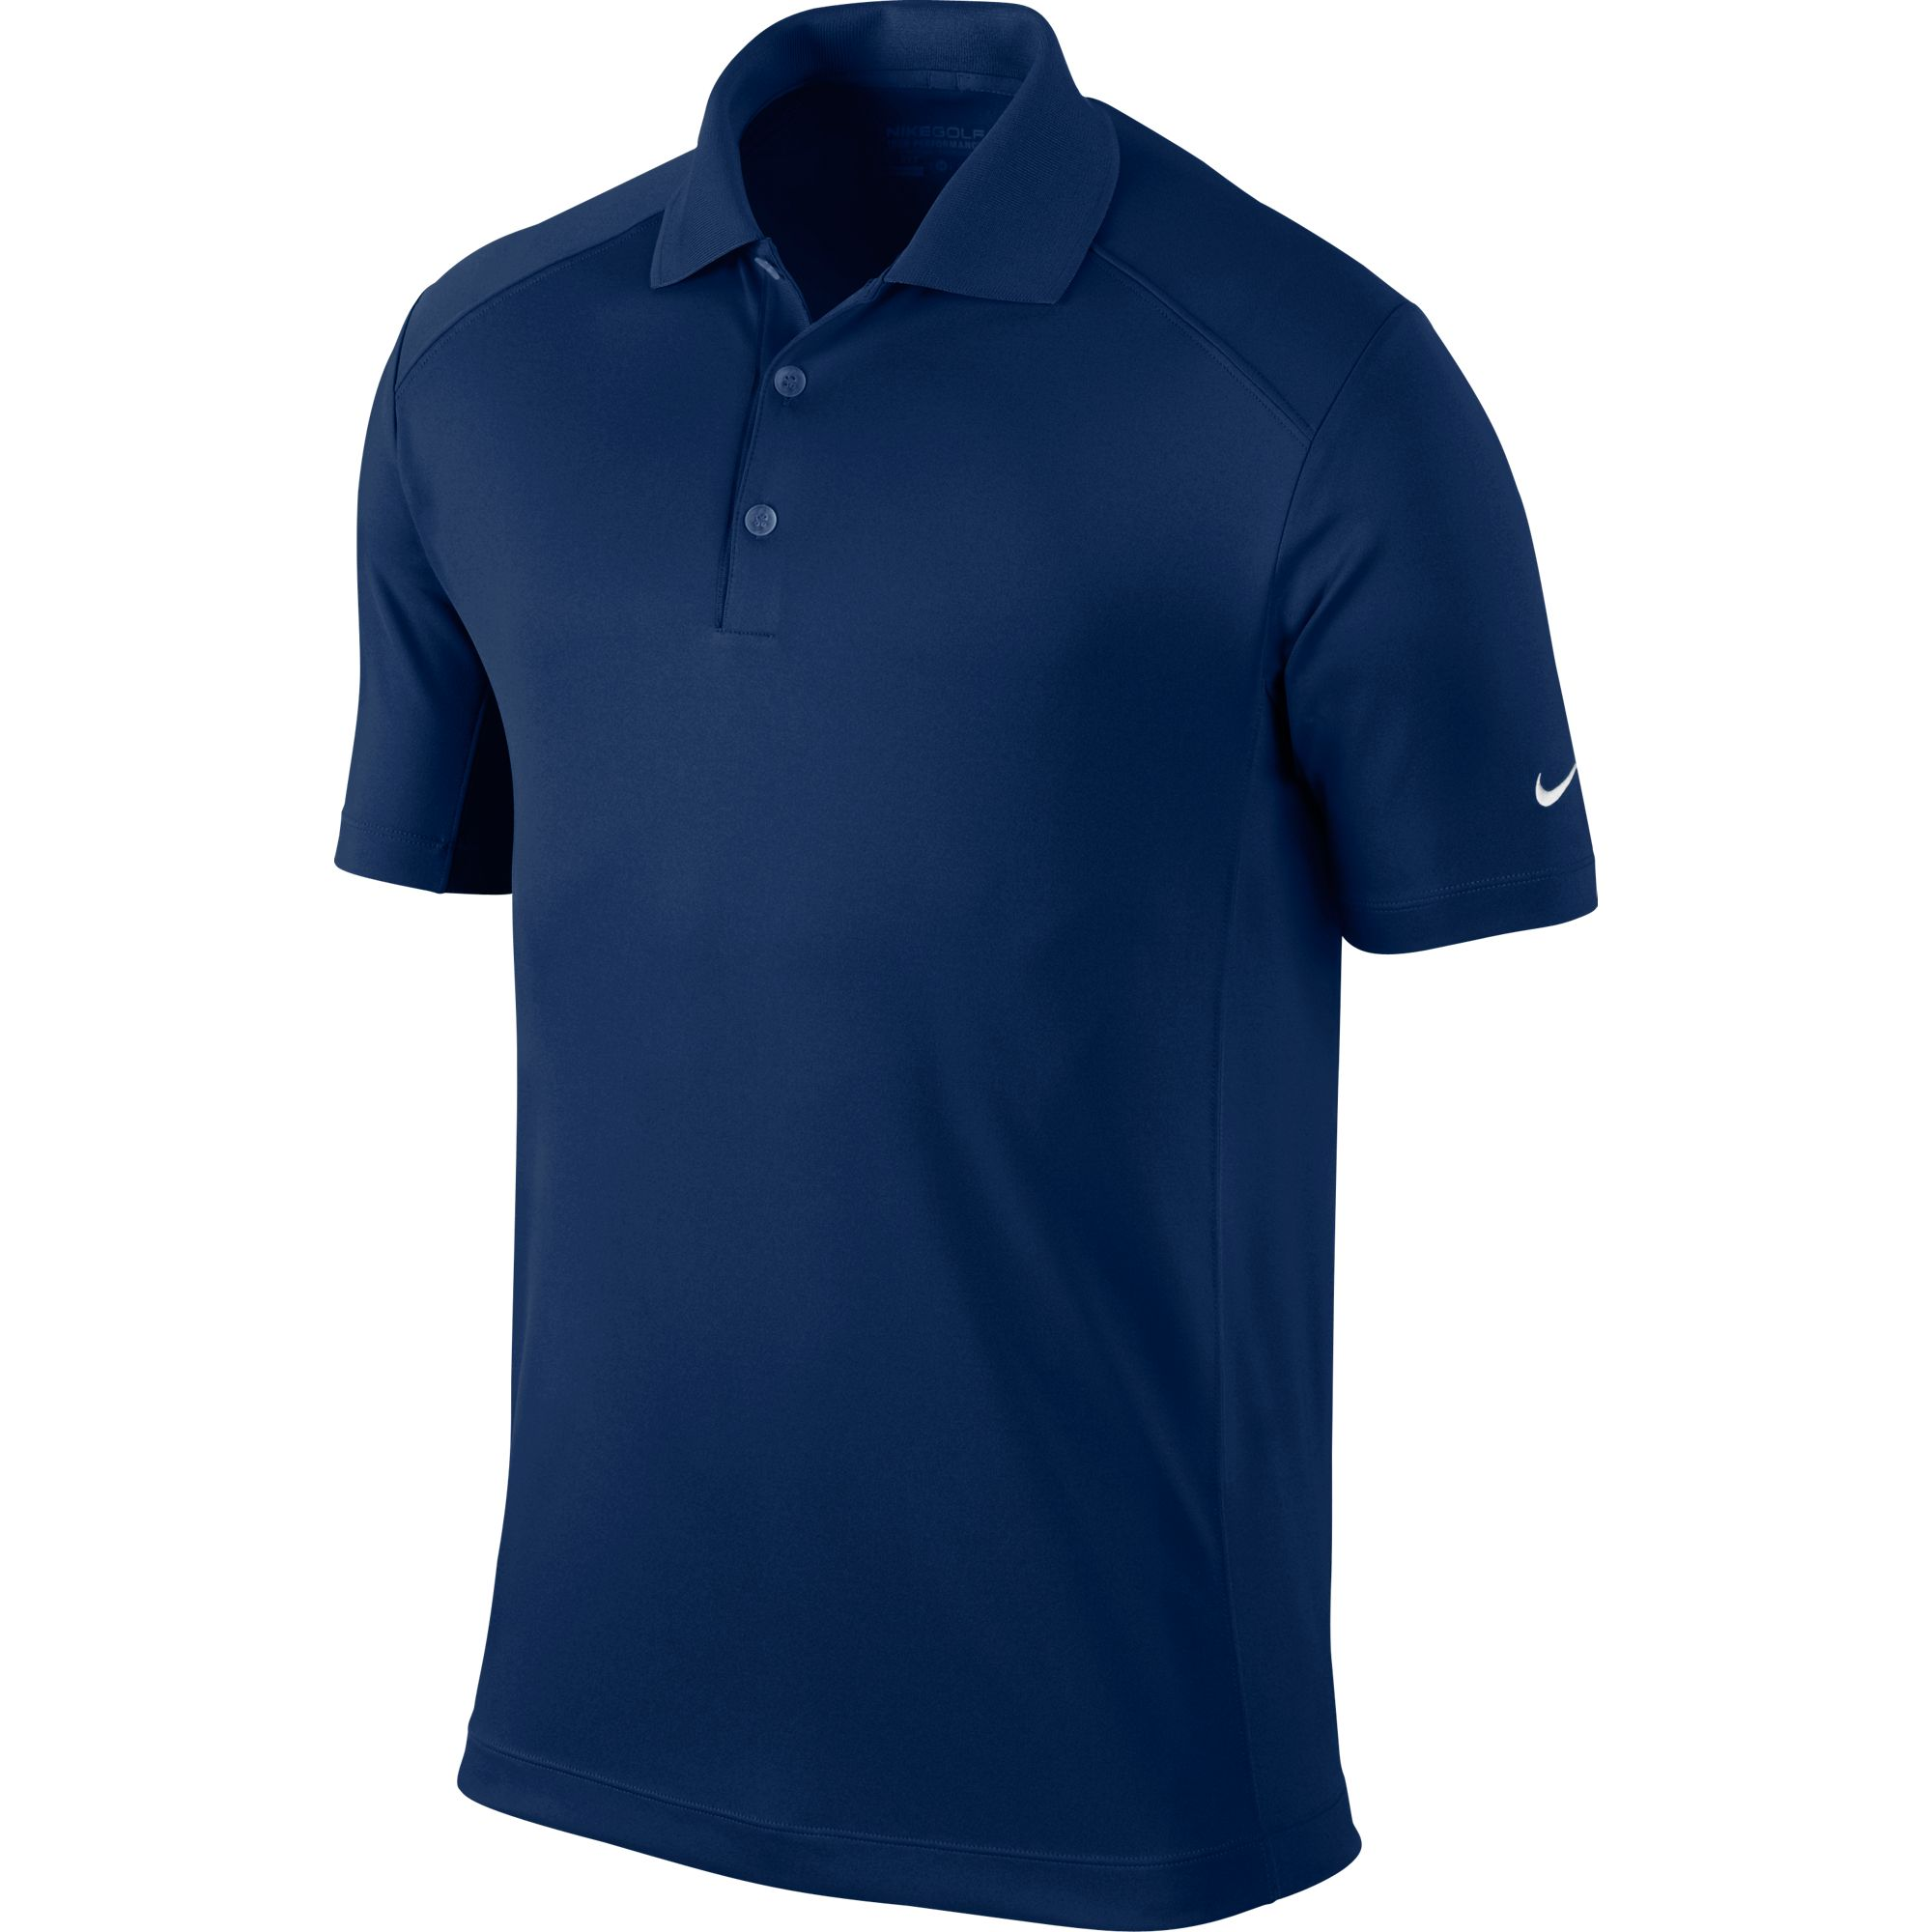 Men's Victory Solid Polo Golf Shirt, Navy, swatch